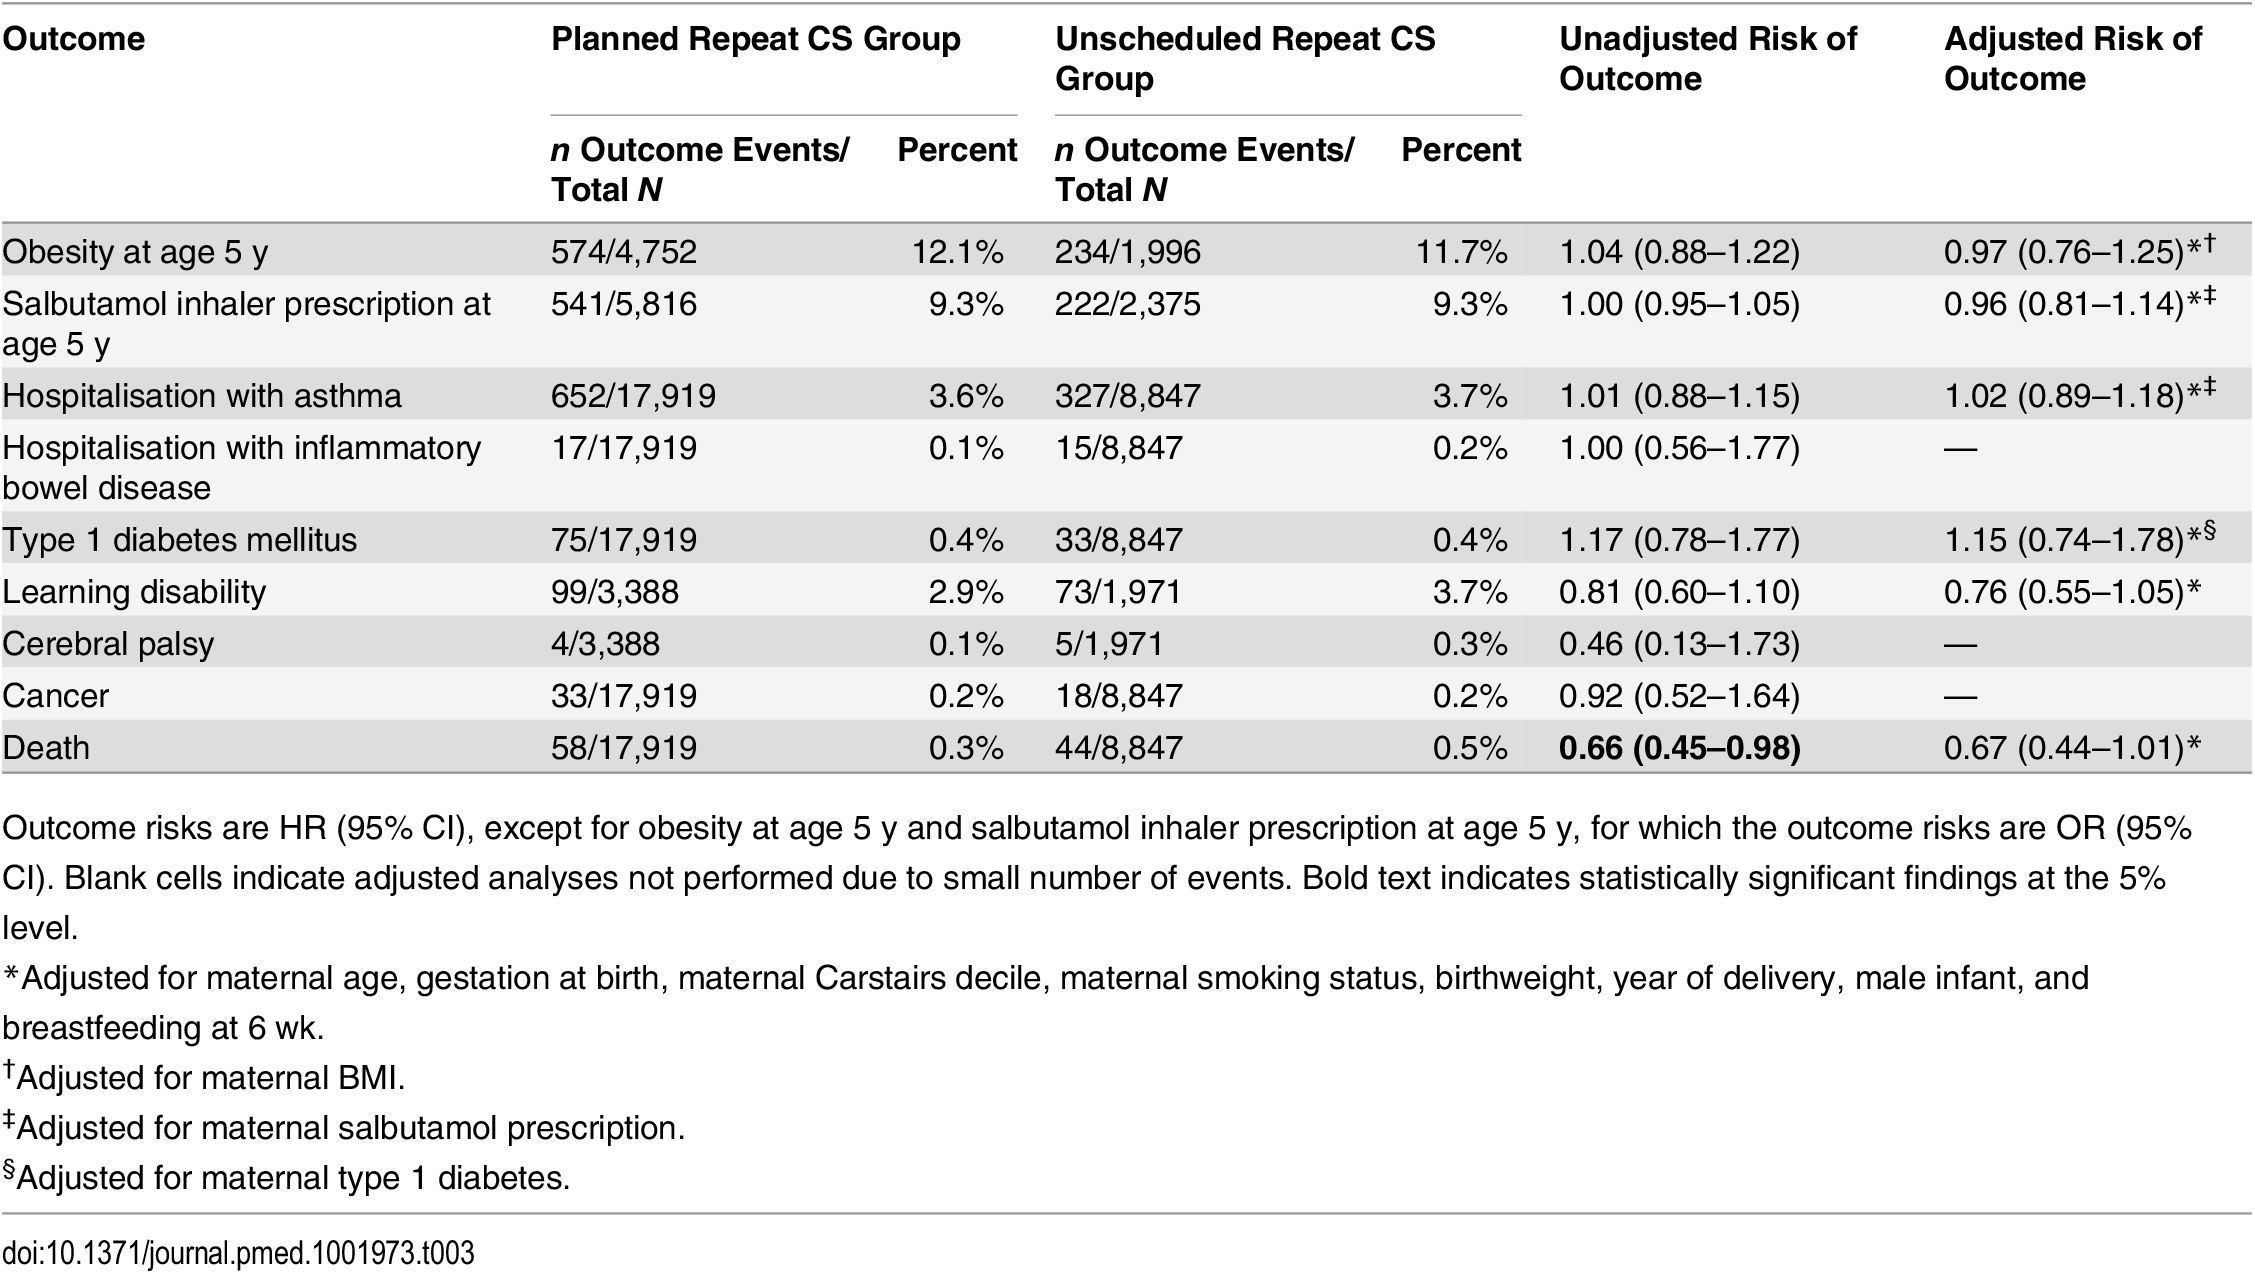 Offspring health outcomes comparing planned repeat cesarean with unscheduled repeat cesarean delivery.